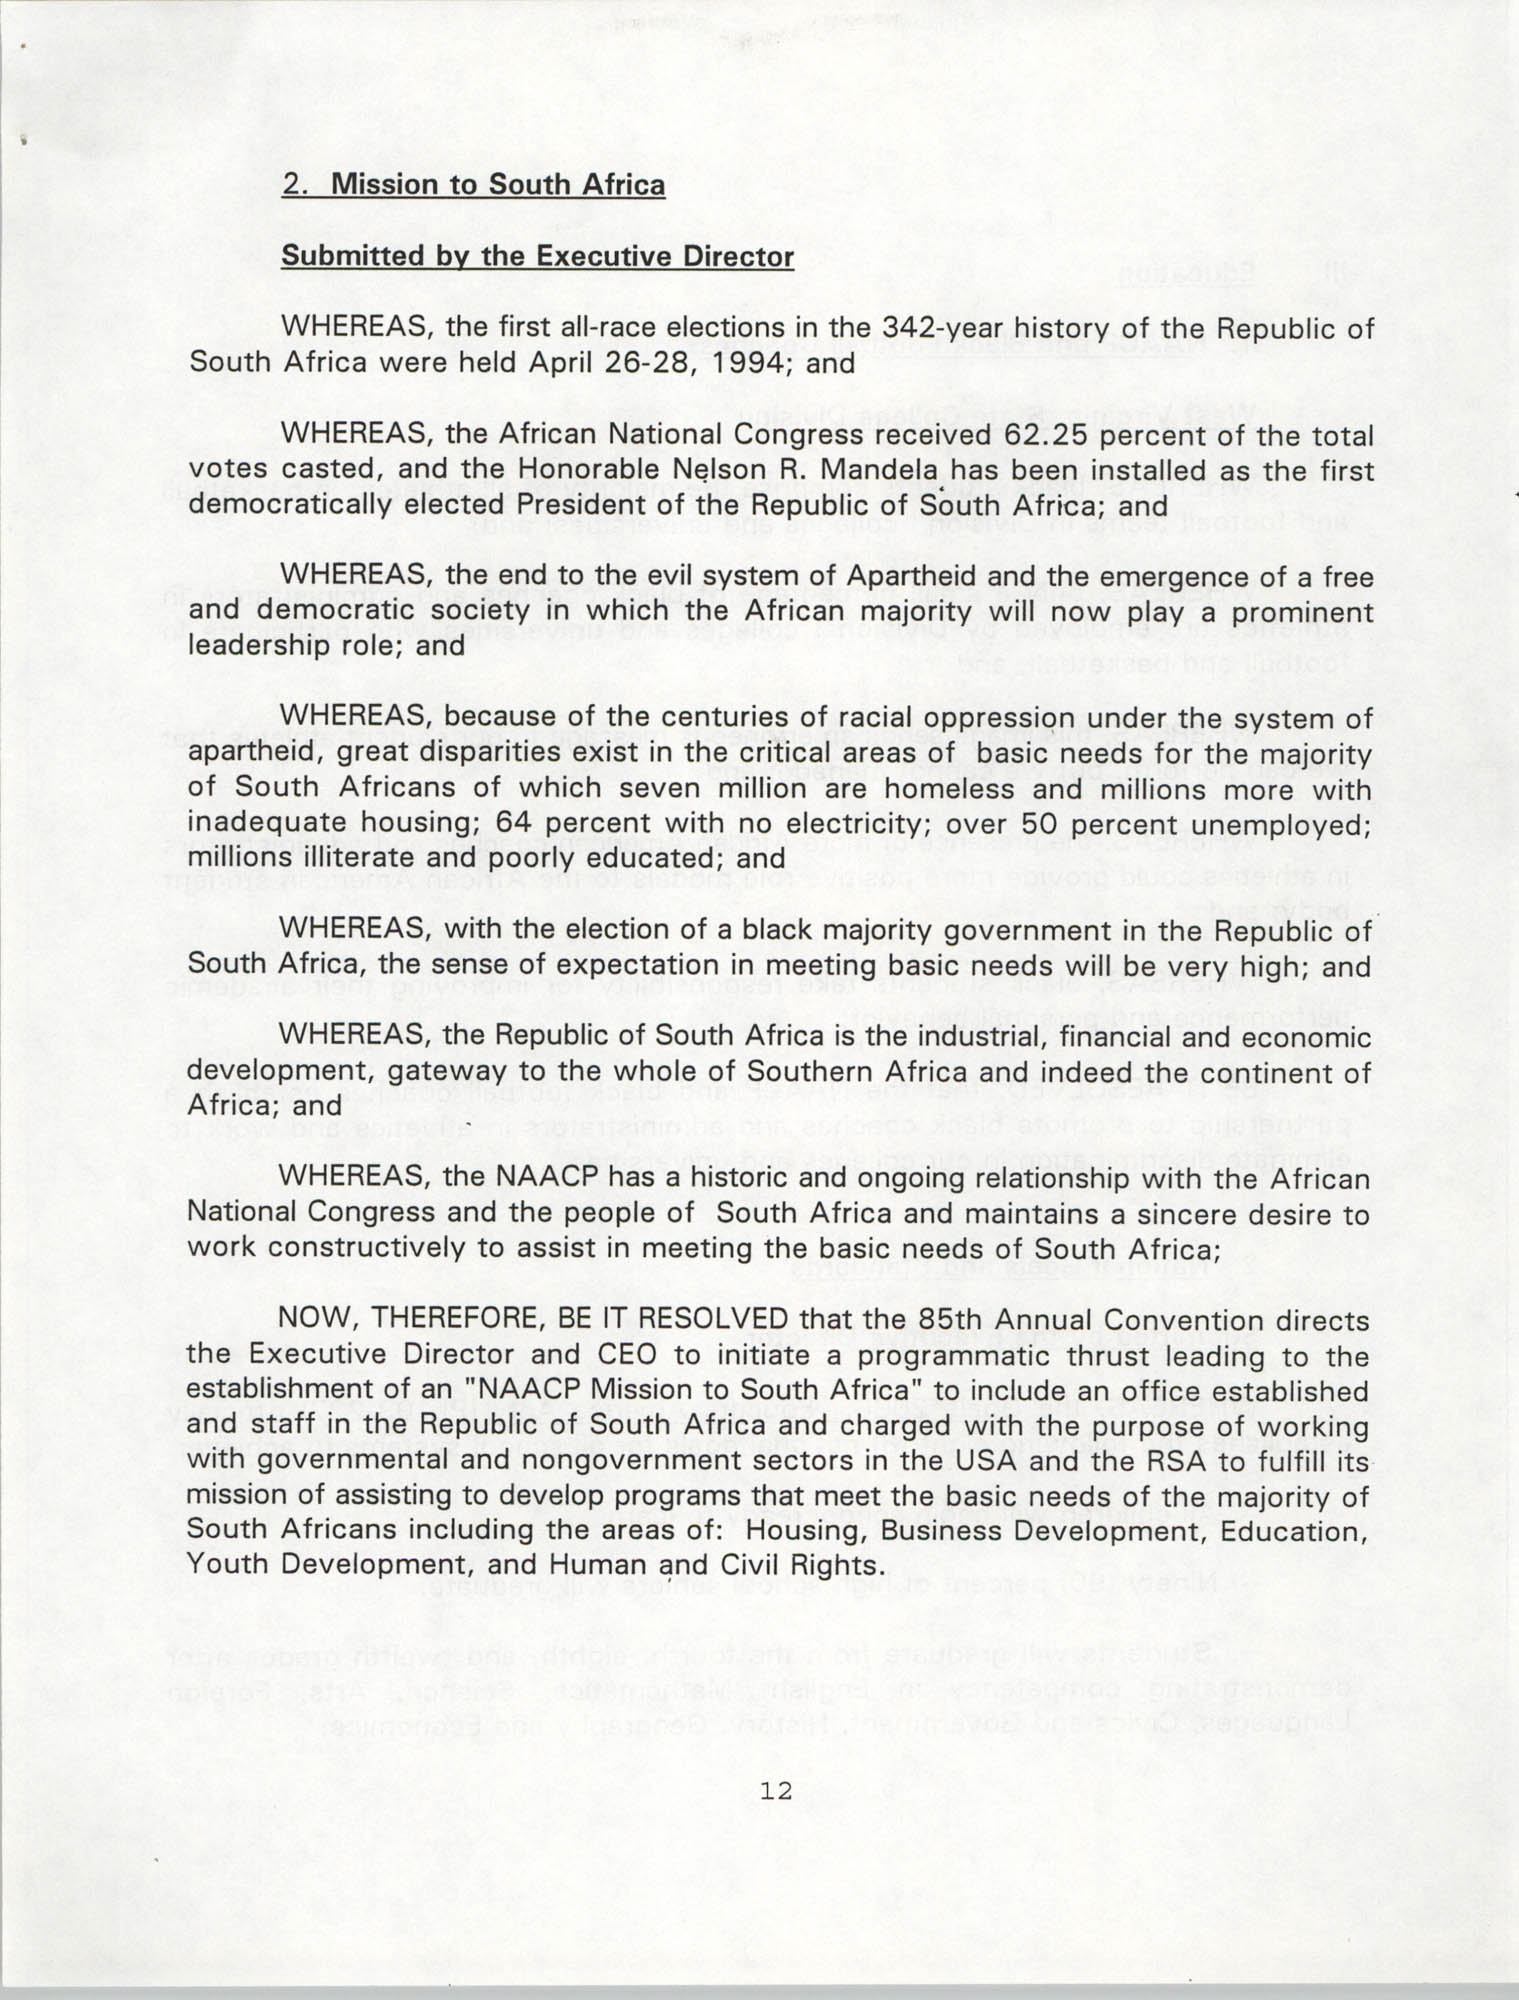 Resolutions Submitted Under Article X, Section 2 of the Constitution of the NAACP, 1994, Page 12